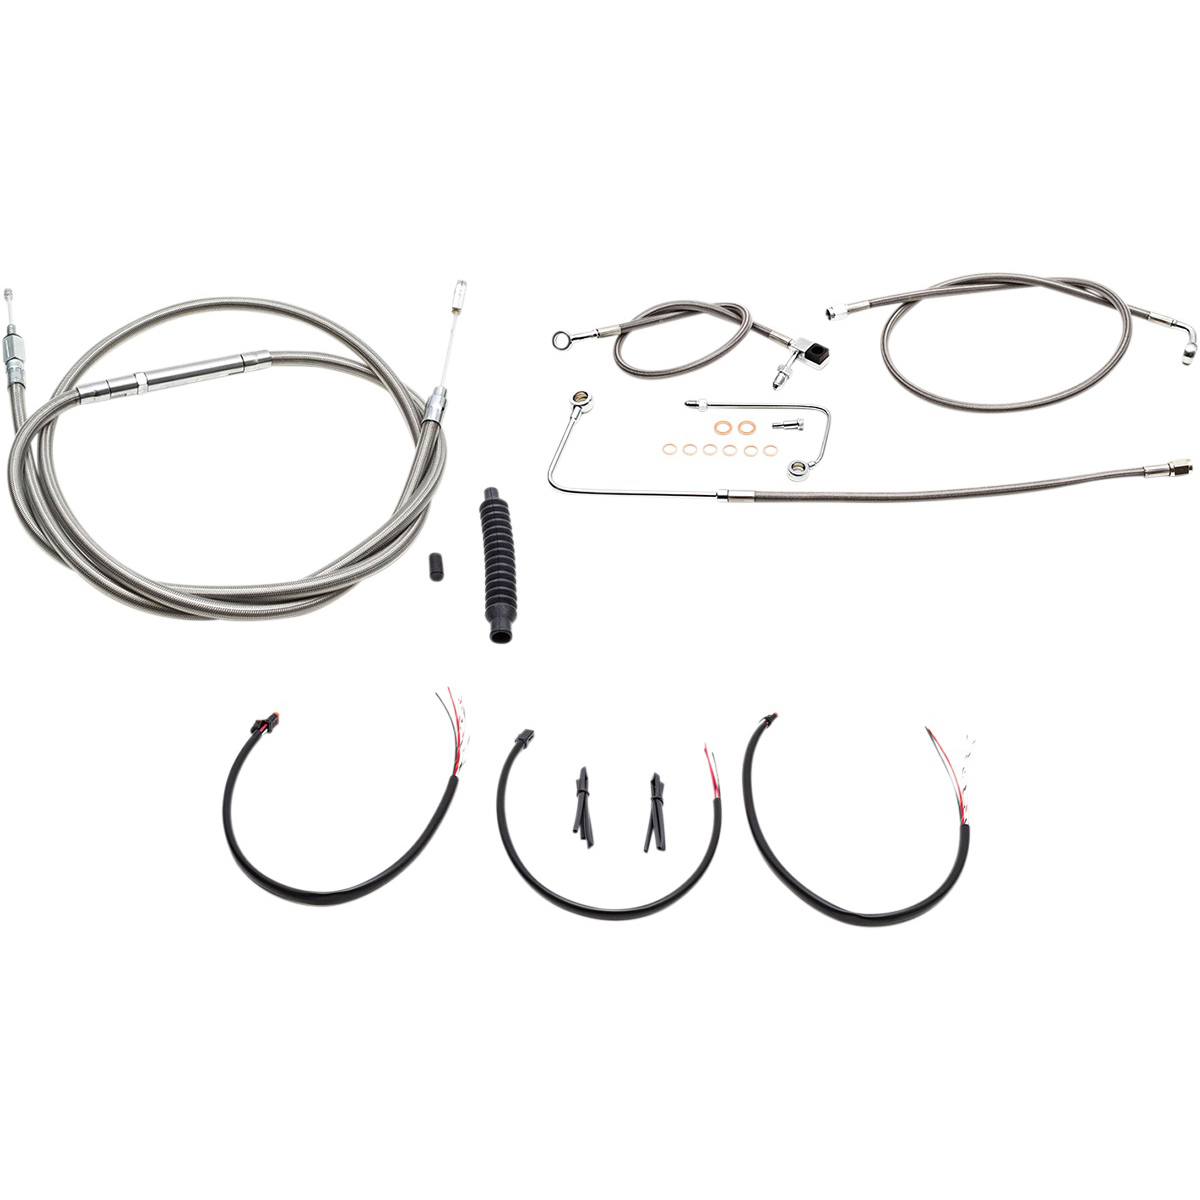 La Choppers Stainless Complete Cable Line Wiring Handlebar Kit For 15 17 Bars On Models With